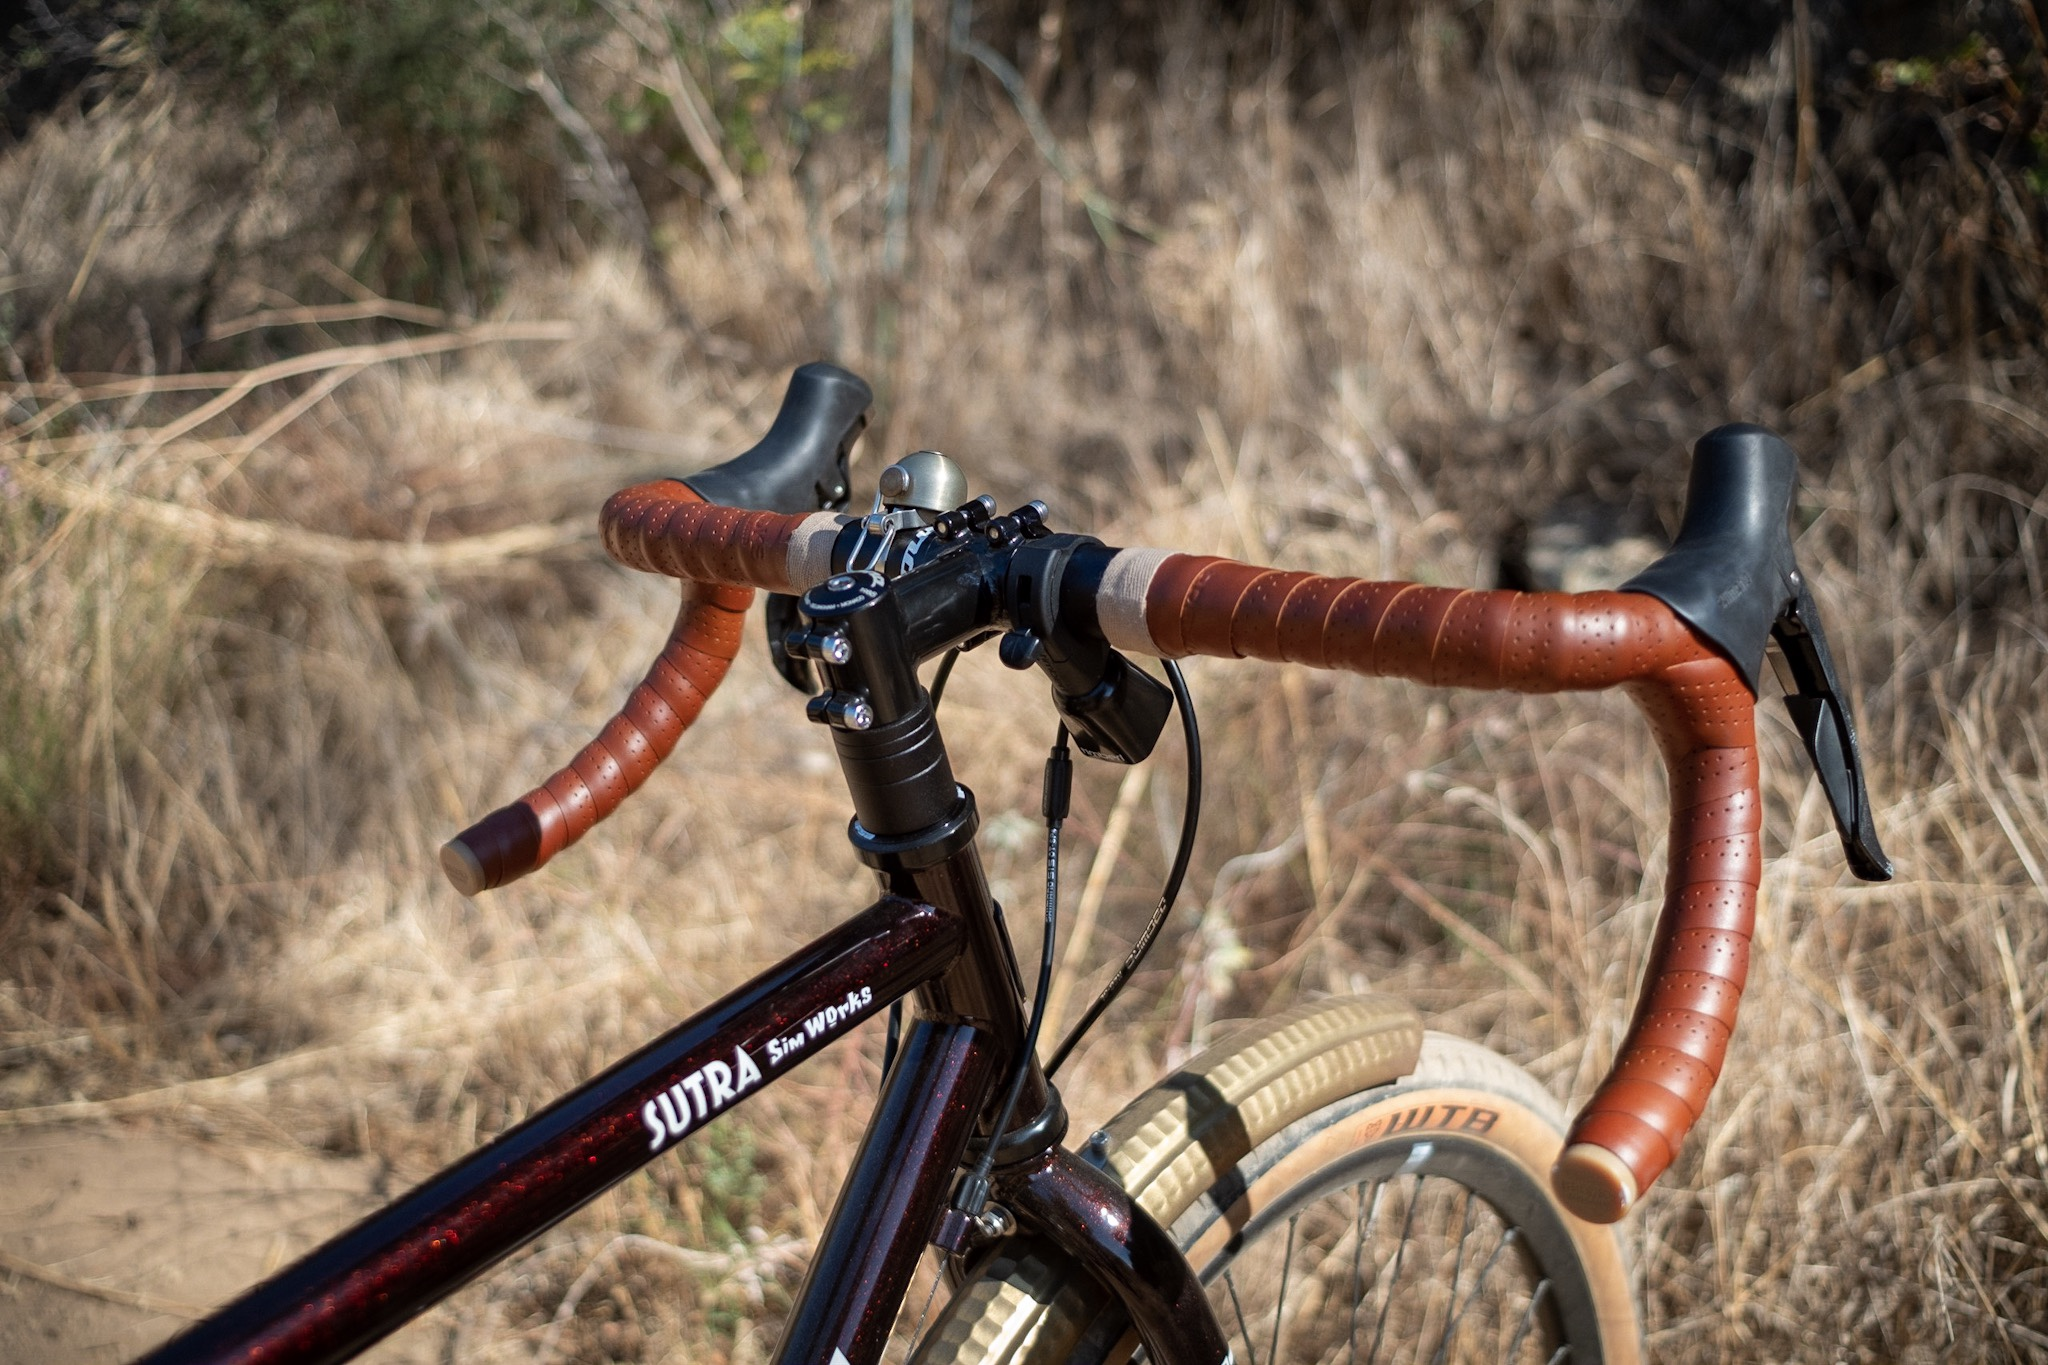 Kona Sutra 650b handlebar and bells detail.